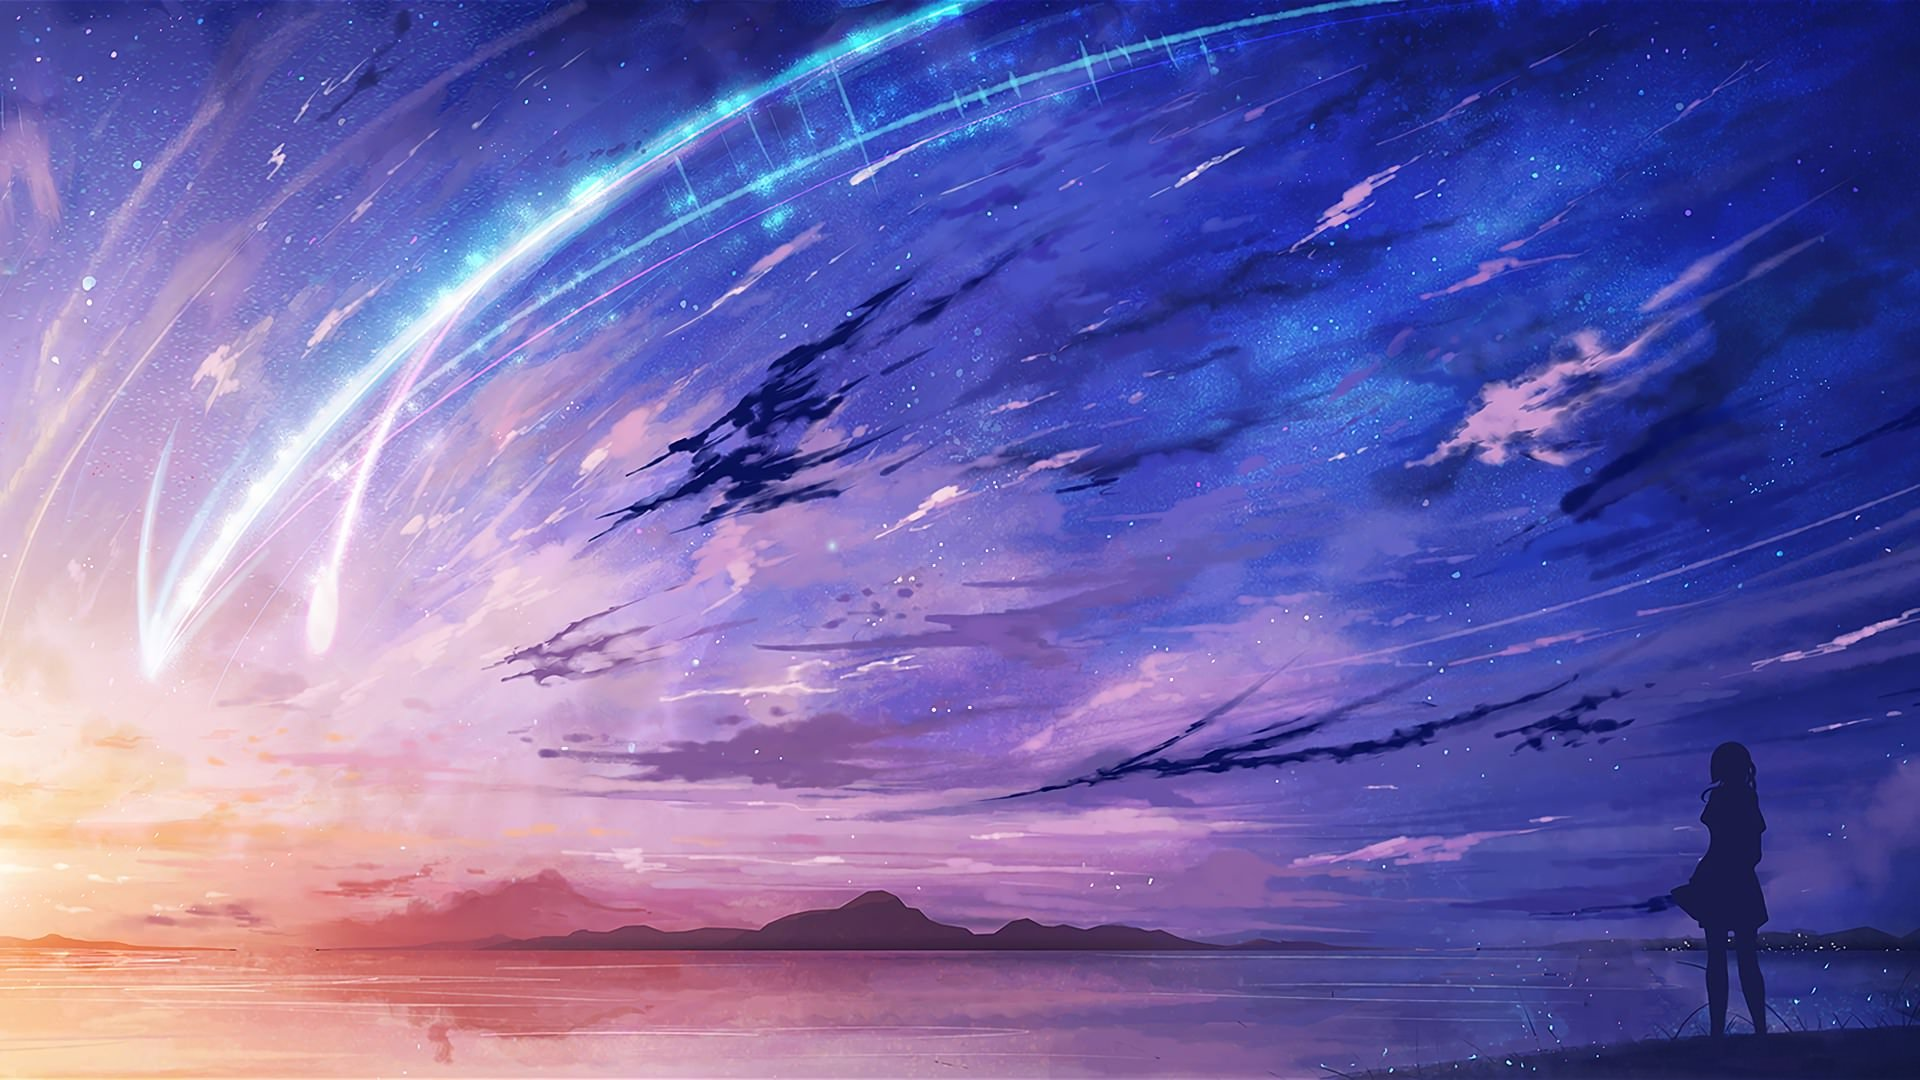 Your Name Anime Landscape Wallpapers   Top Your Name Anime 1920x1080